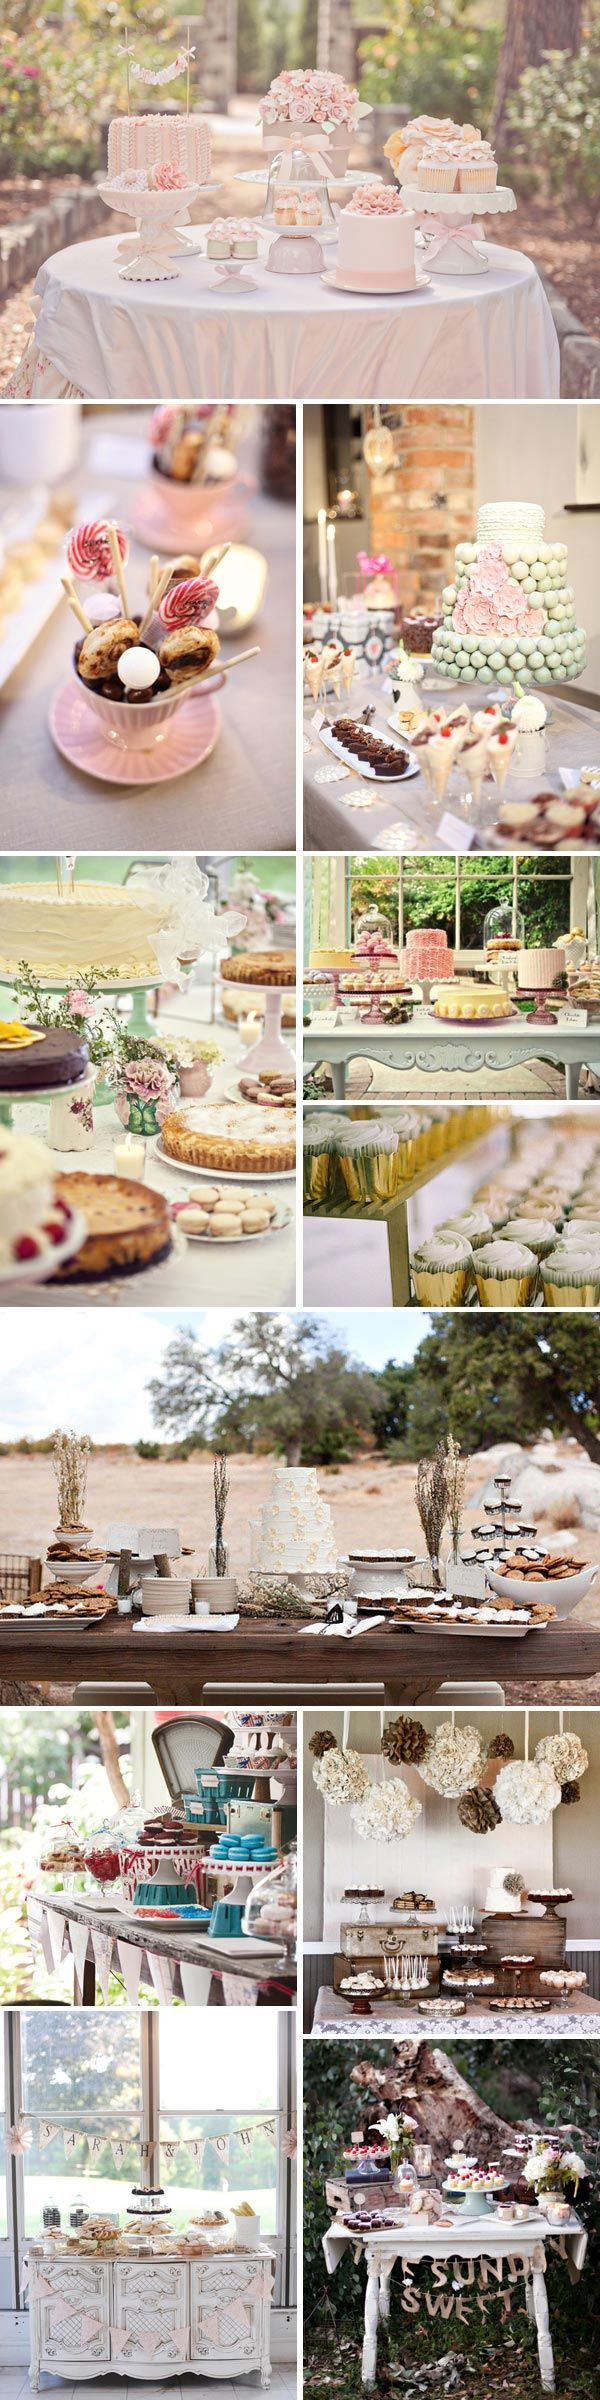 Let them eat cake rustic wedding chic - Cake Buffet Displays Shabby Chic